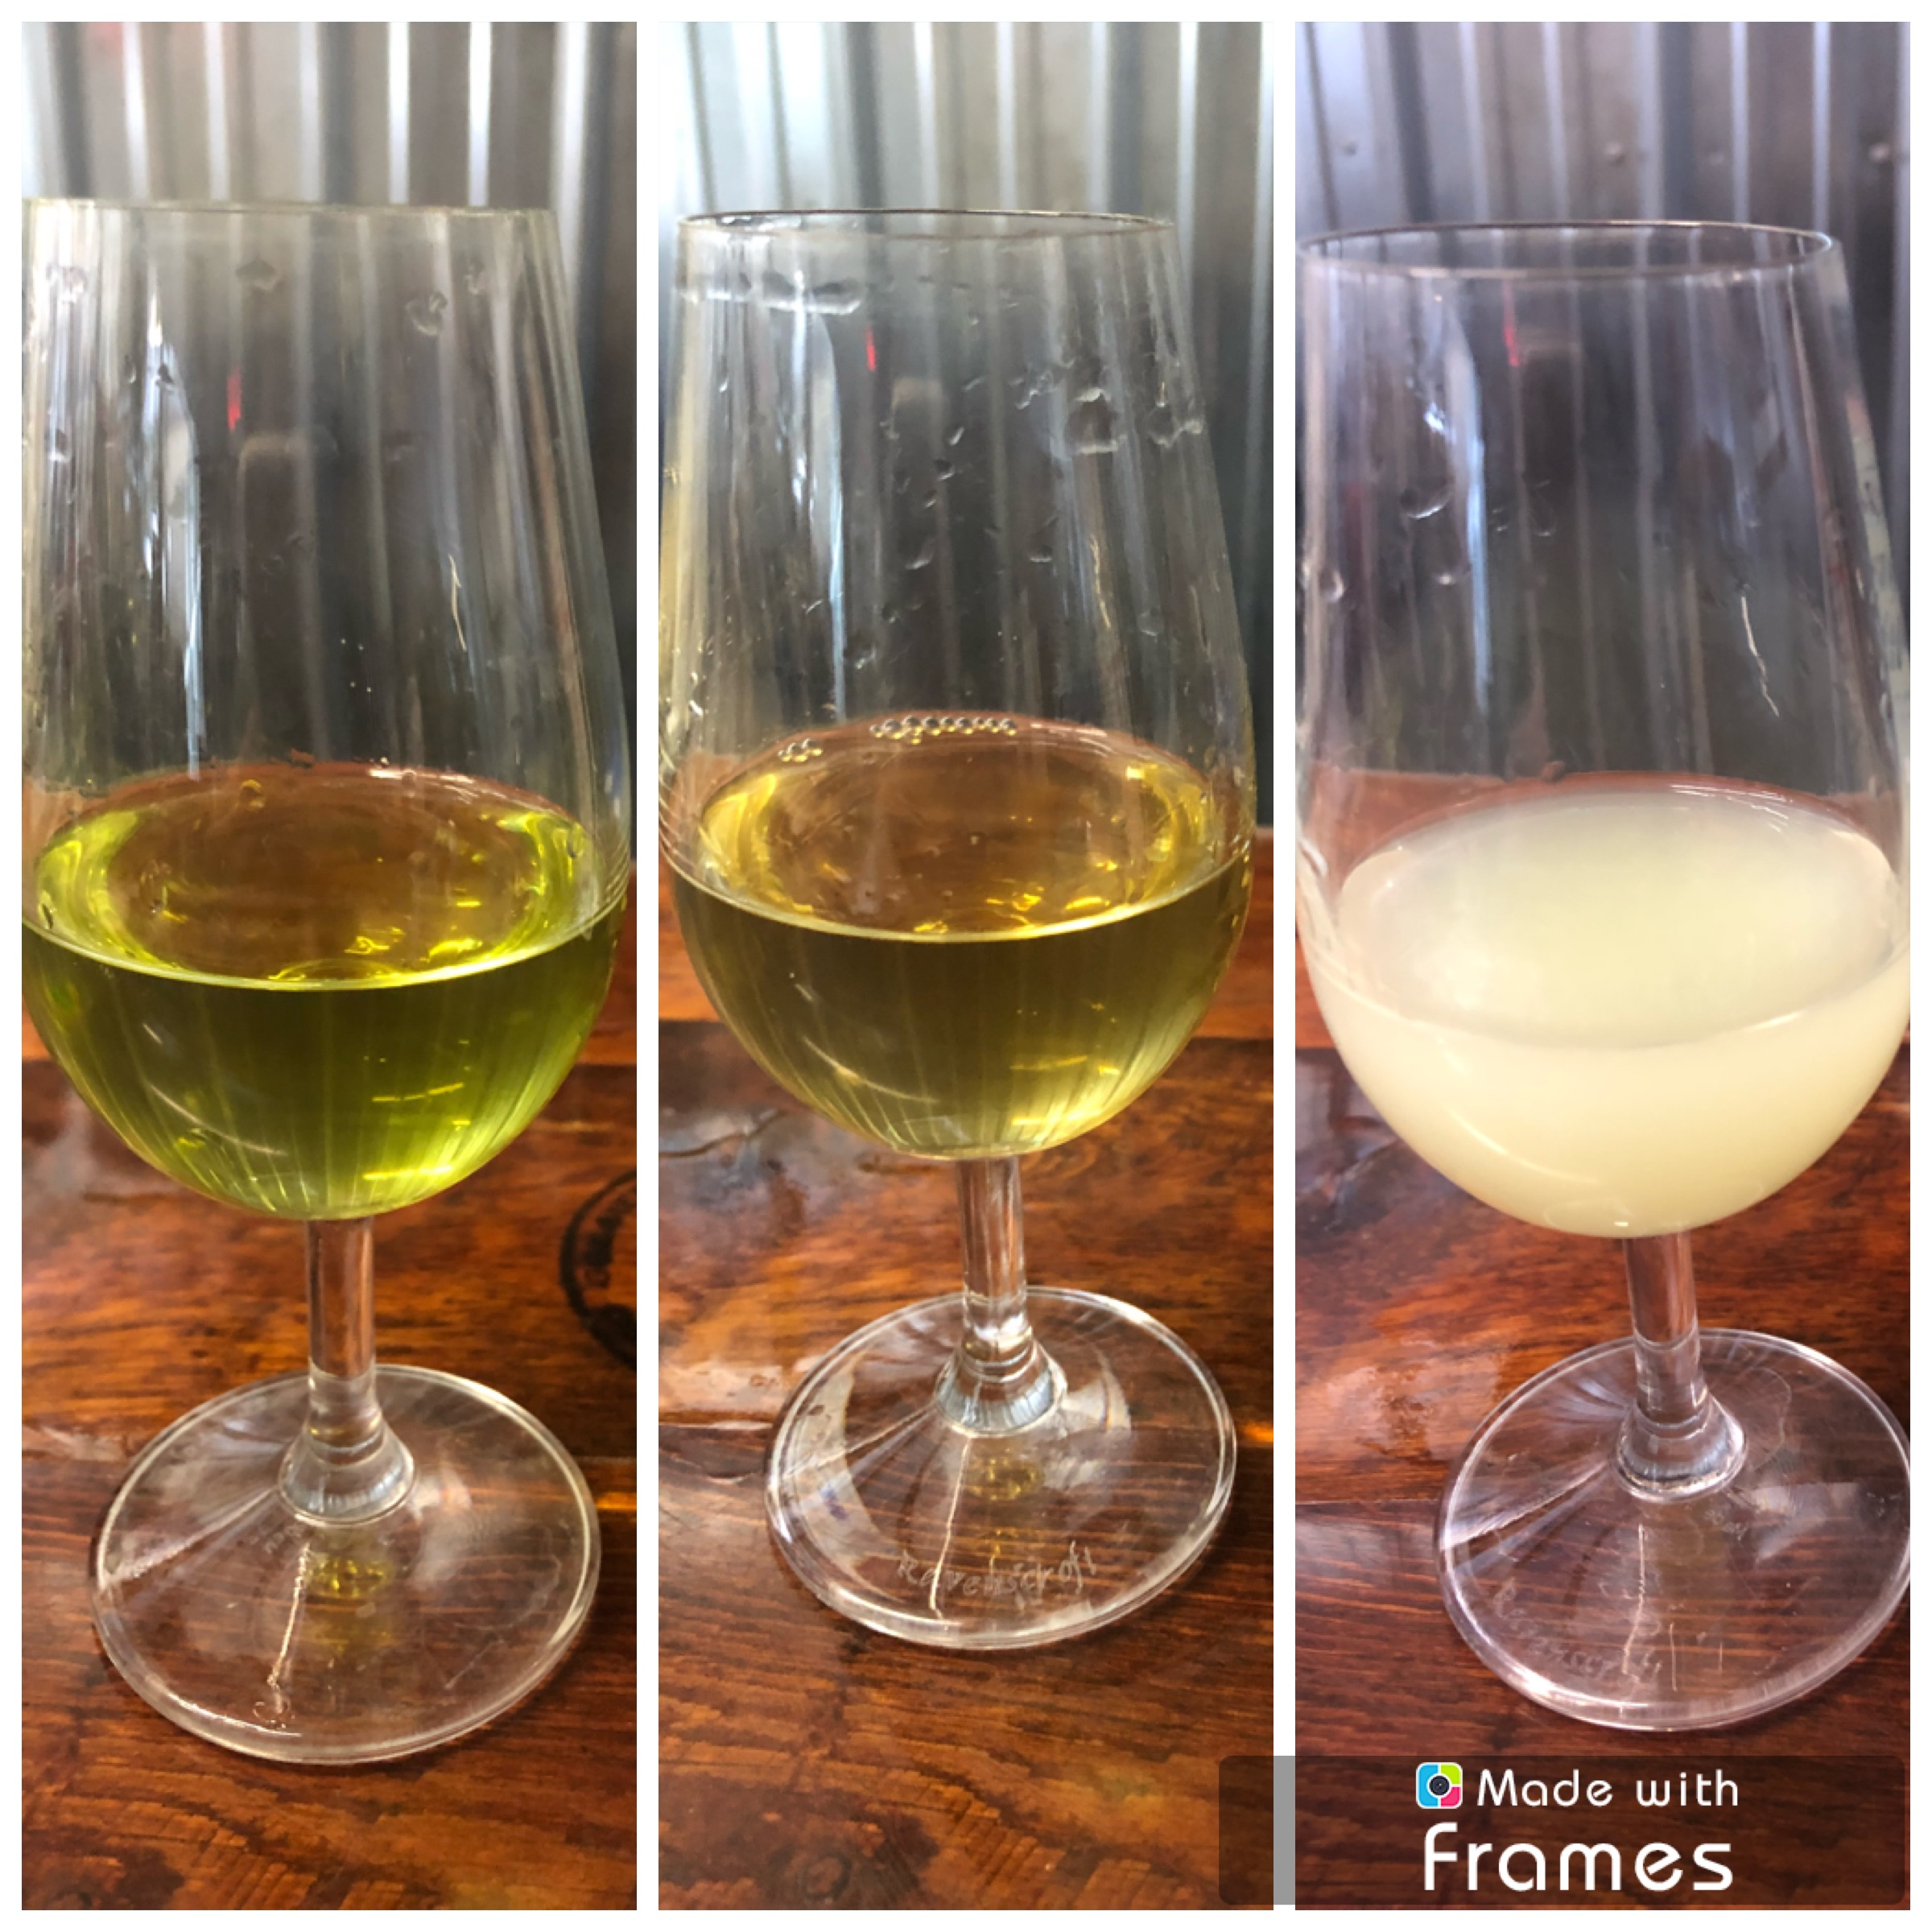 """The glass on the far left displays the natural color of Trail of the Cedars Absinthe, the glass in the middle shows the color of the spirit after resting in a green tinted glass bottle, and the glass on the far right shows the milky color of Trail of the Cedars Absinthe after """"La Louche."""""""